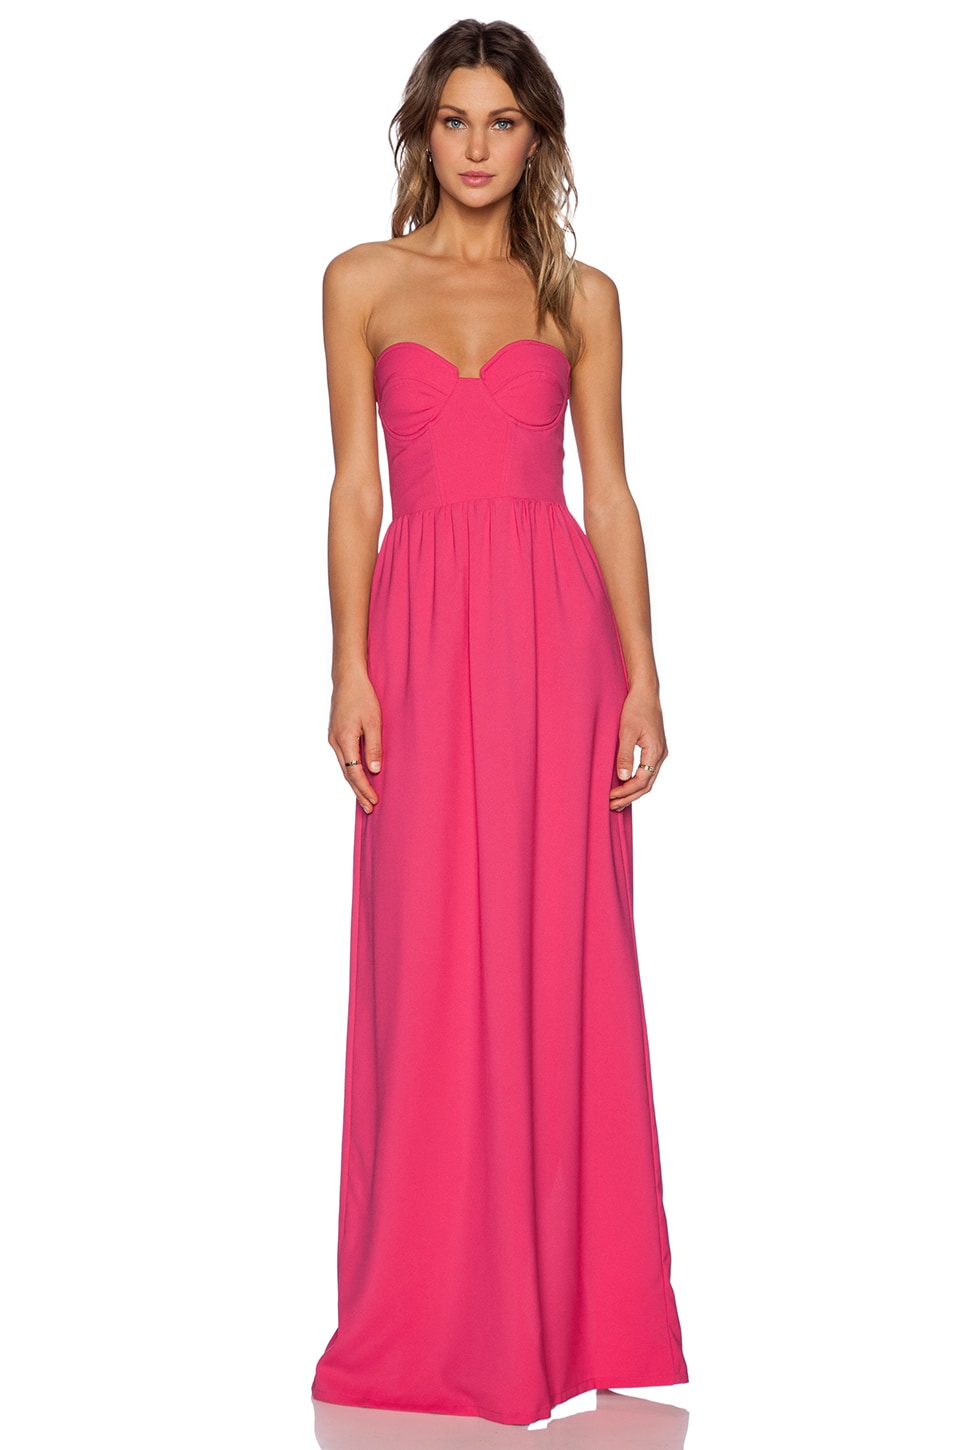 Shop a great selection of Maxi Dresses for Women at Nordstrom Rack. Find designer Maxi Dresses for Women up to 70% off and get free shipping on orders over $